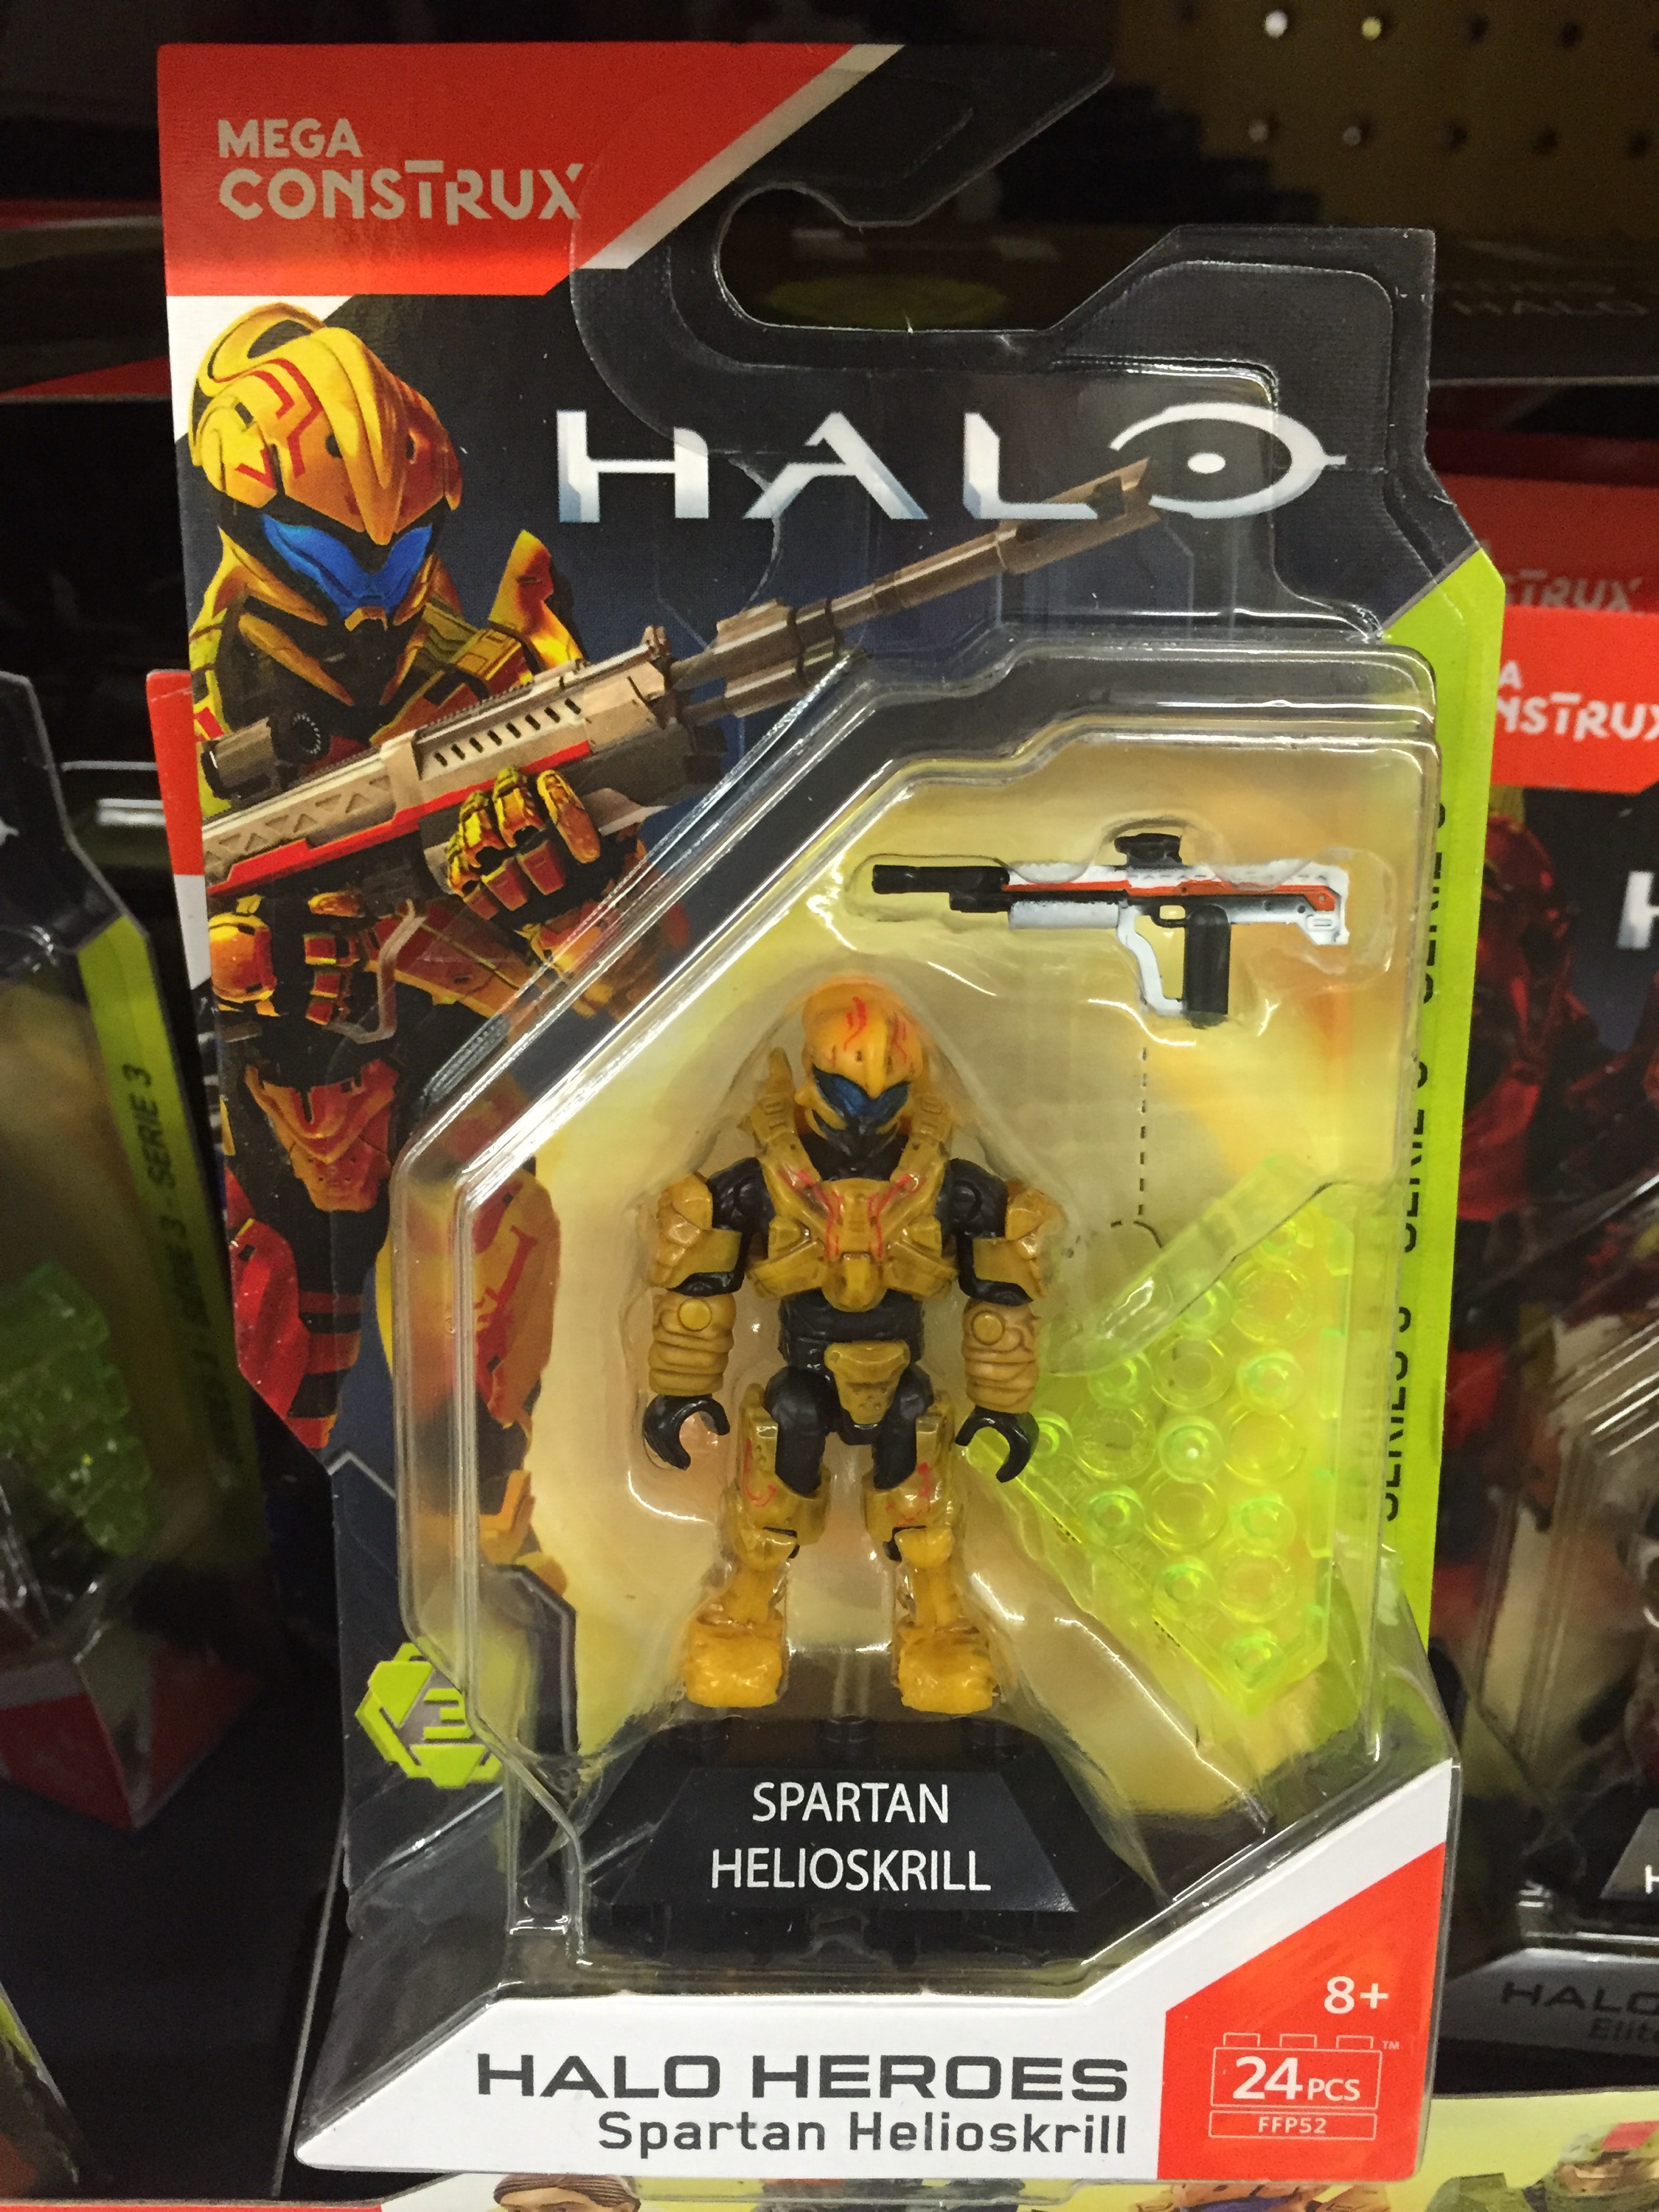 Mega Construx Halo Heroes Series 3 Figures Released & Photos